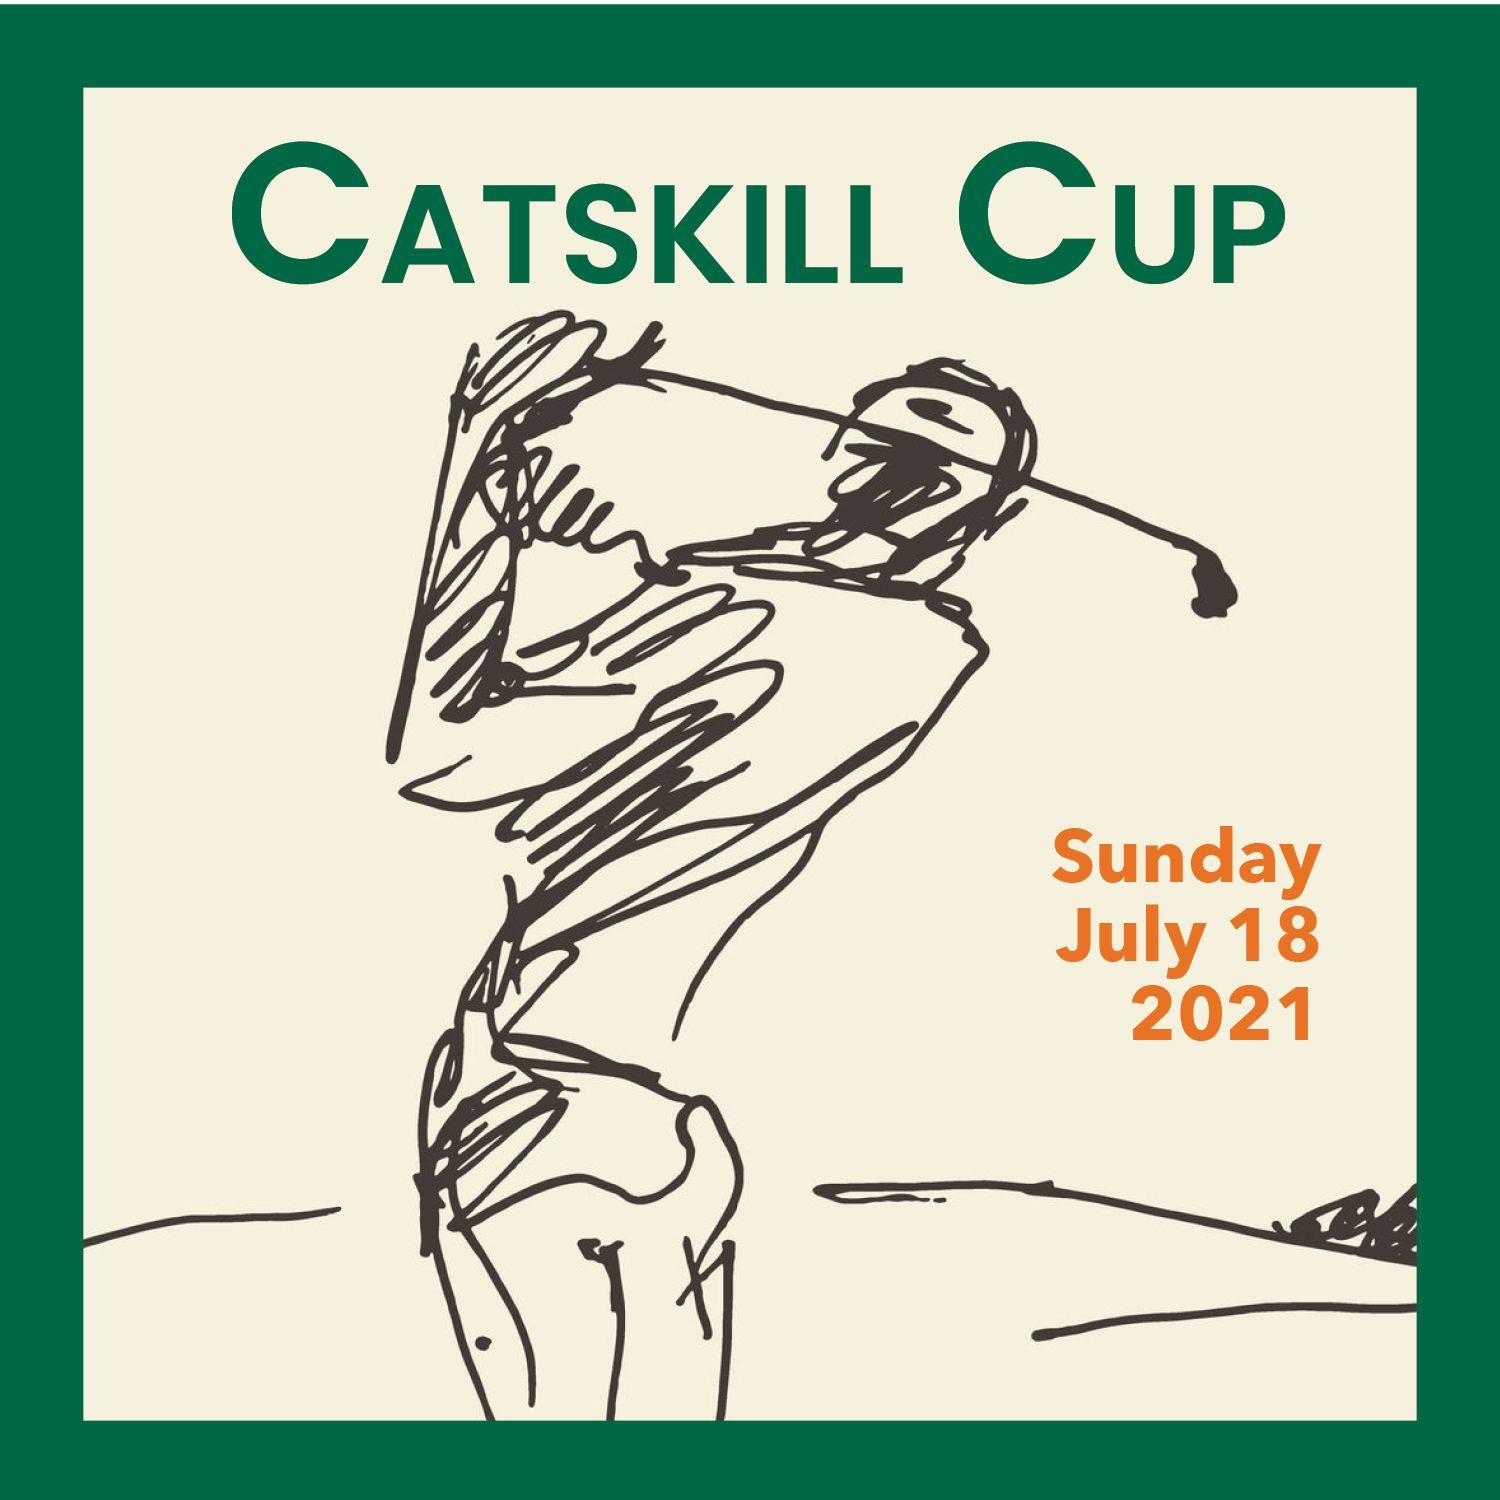 Register for The Catskill Cup